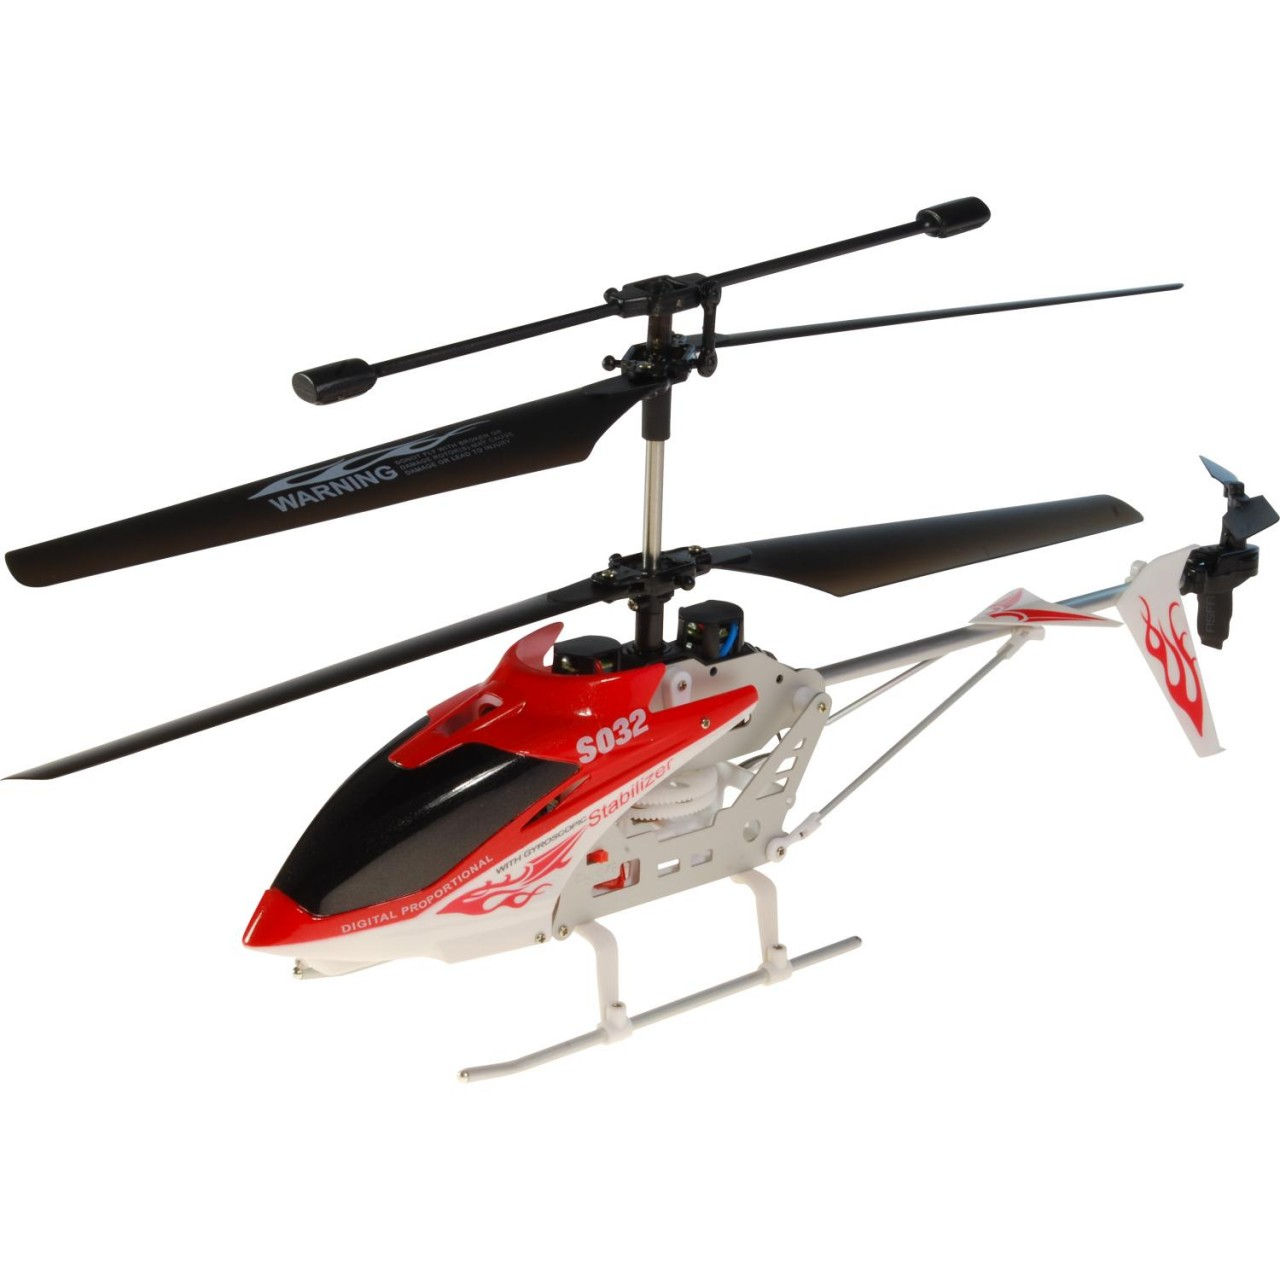 best remote helicopter for beginners with Rc Helicopter Model For Beginner on Remote Controlled Helicopters With Camera furthermore Fastest Rtr Rc Car additionally The Best Of Traxxas Remote Control Cars furthermore Rchelicop together with Top View Of A Remote Control Airplane.